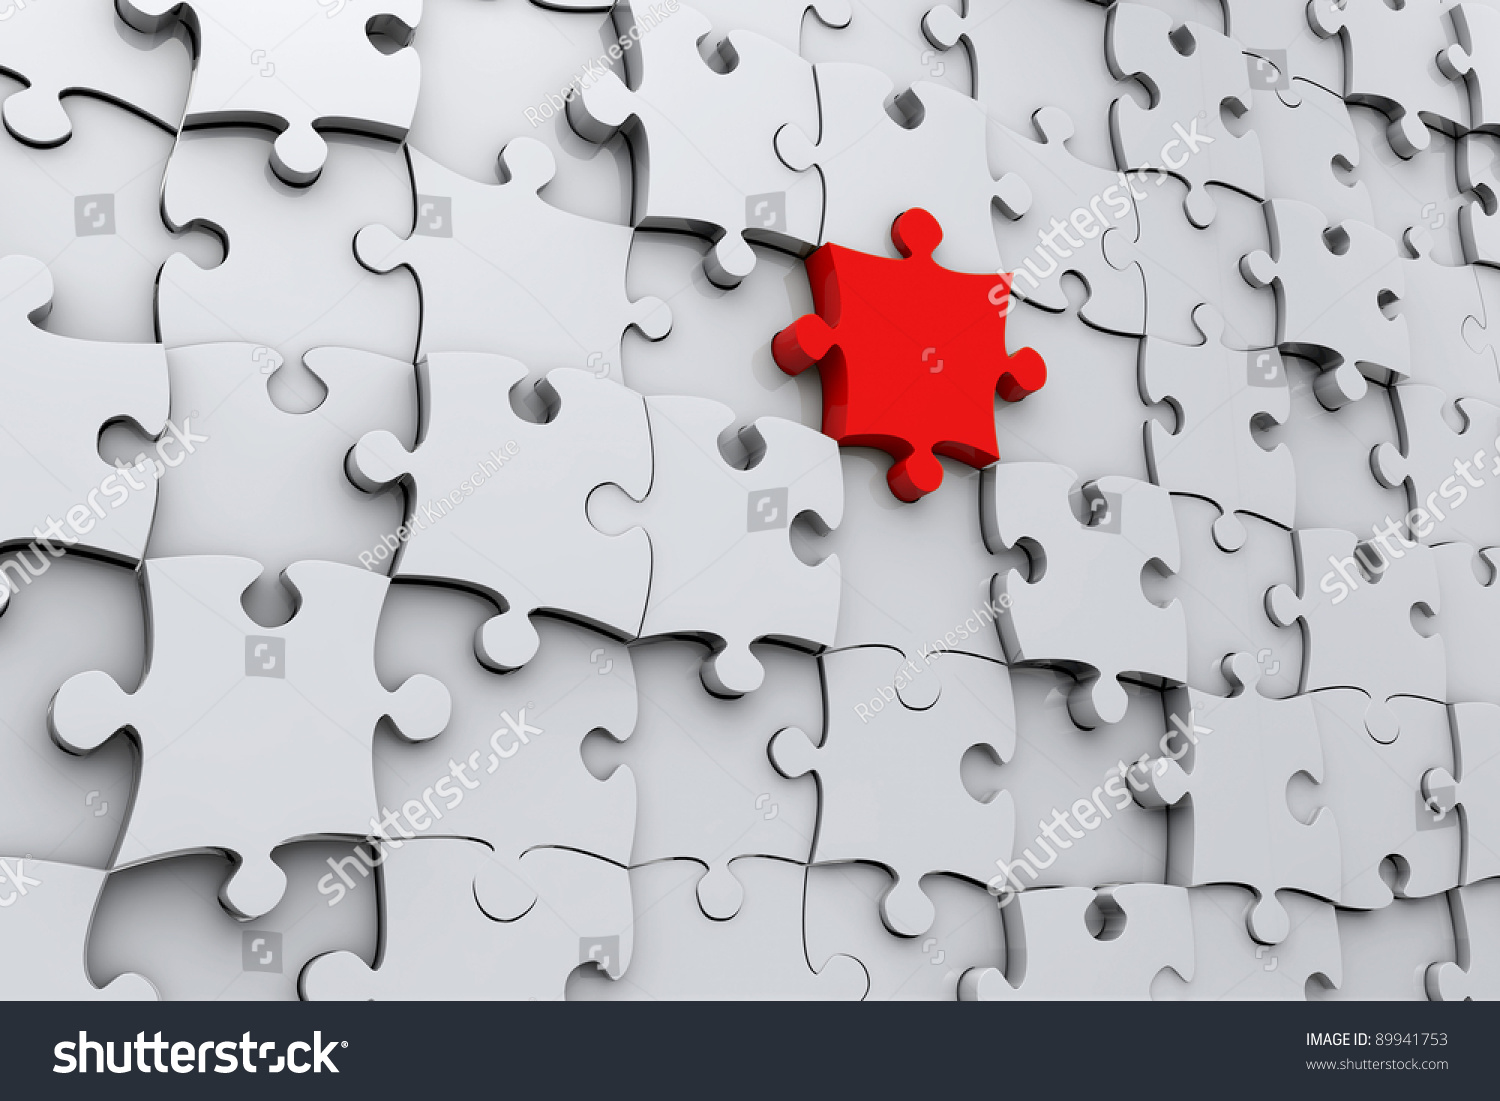 Red Jigsaw Puzzle Piece In 3D A Wall Of Grey Pieces